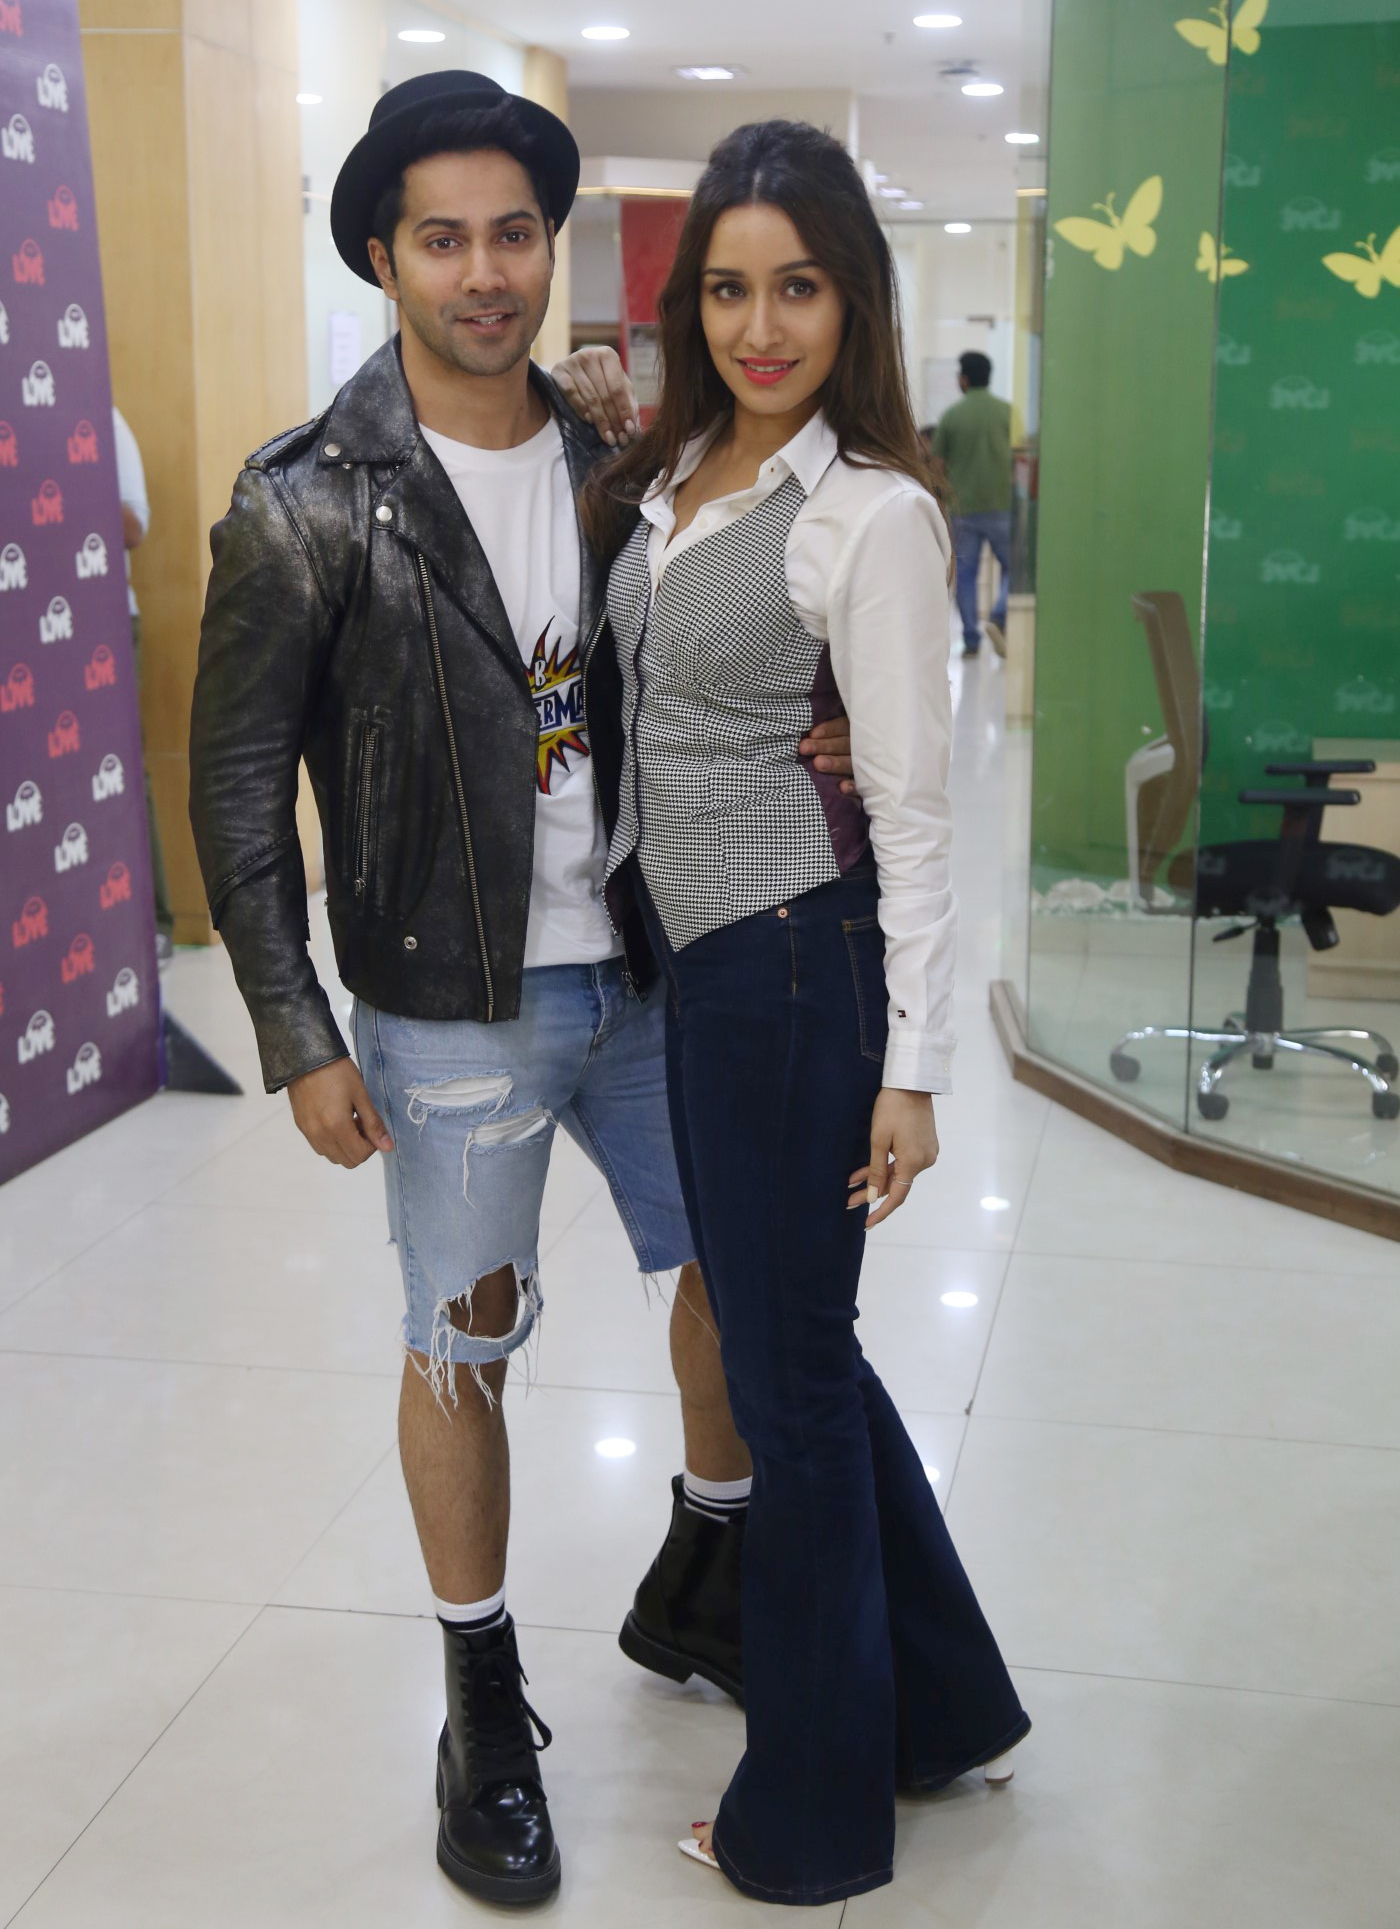 Bollywood actor Varun Dhawan and Shraddha Kapoor Pose for the Photograher during promoting their upcoming movie 'Street Dancer 3D'